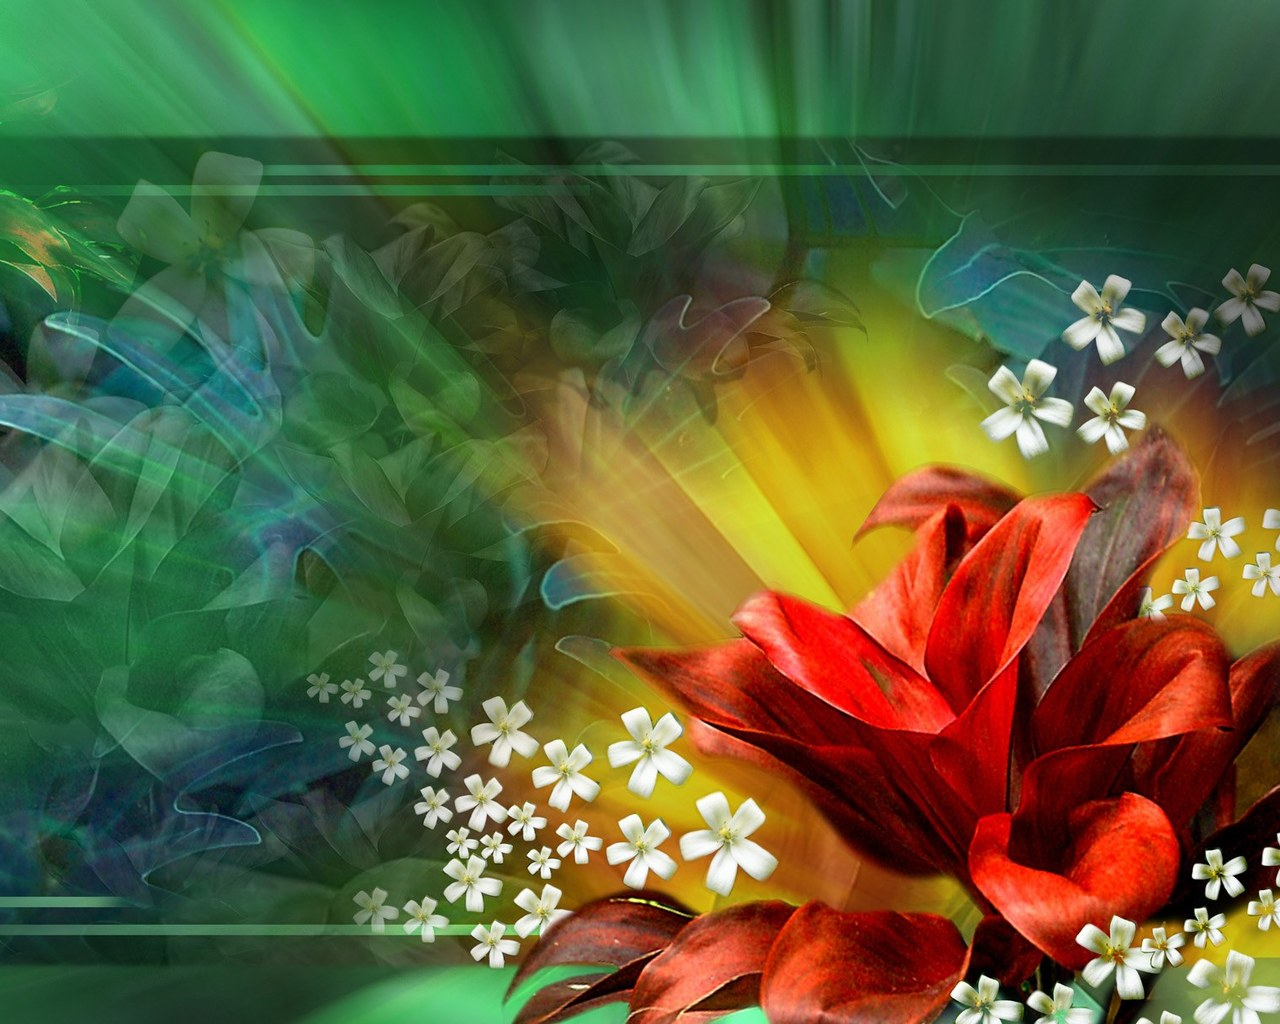 Free 3d Animated Wallpaper For, Free 3d Desktop Wallpaper, Backgrounds For Mac